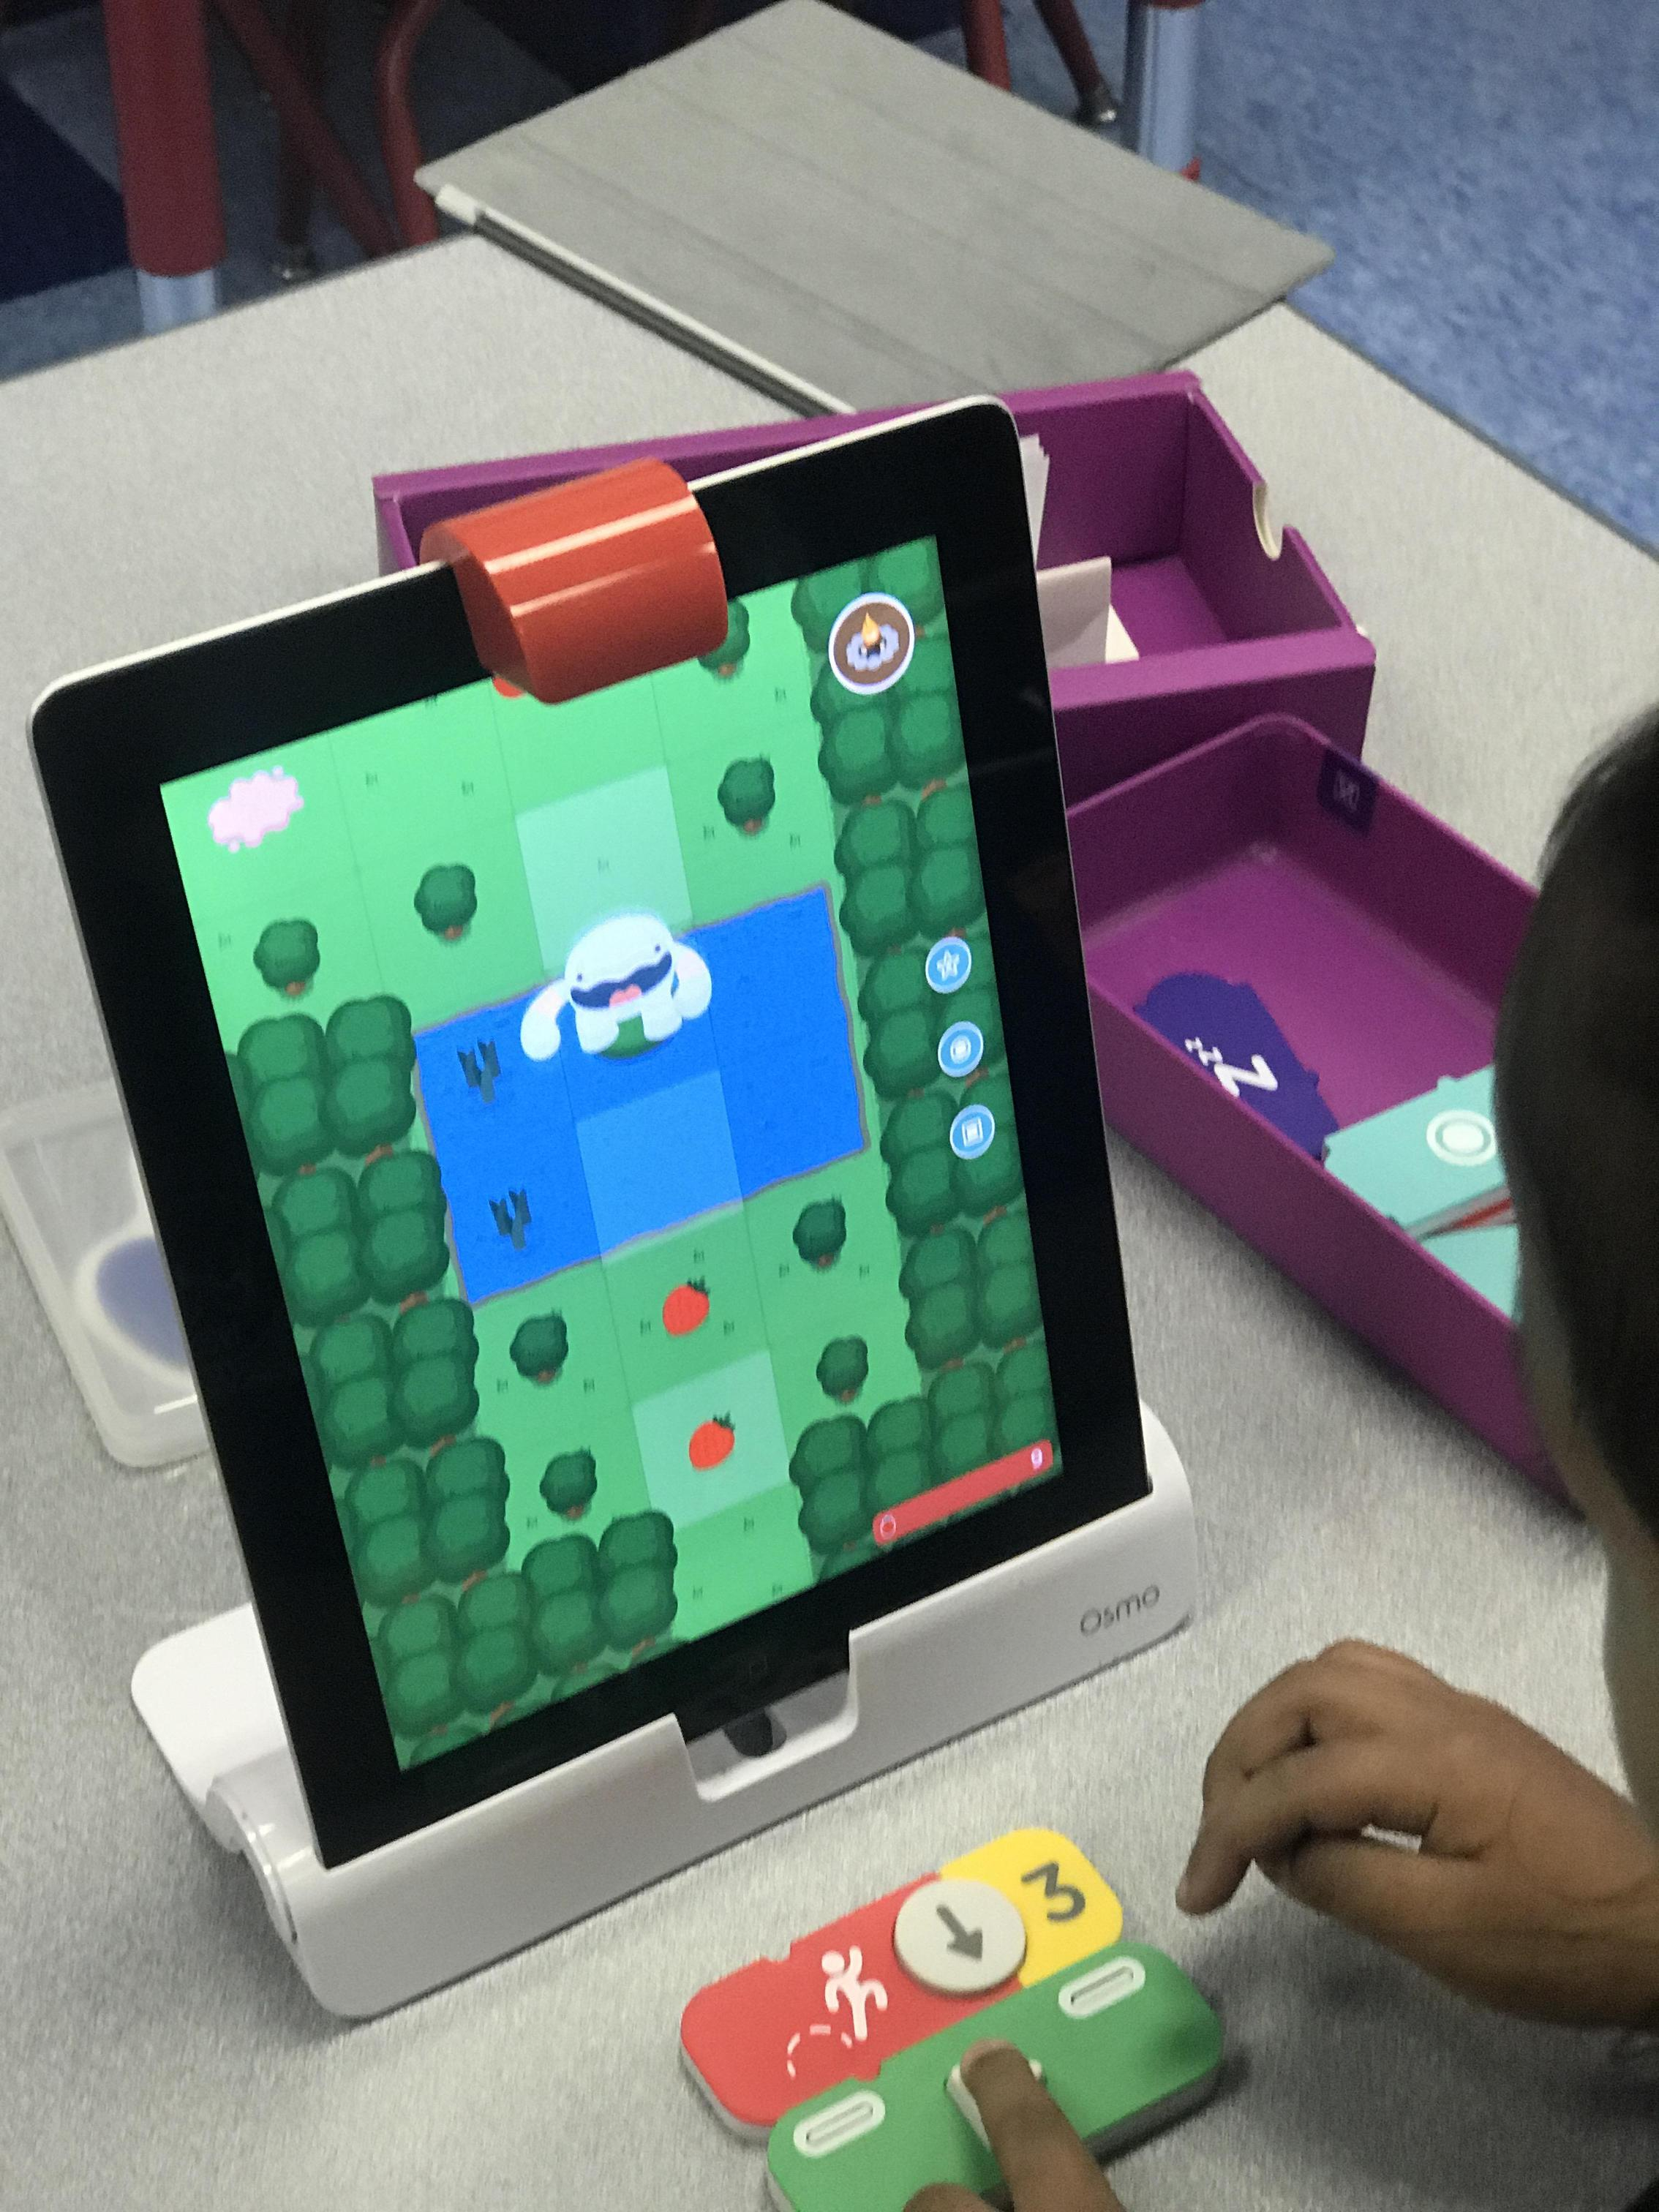 Student coding in the iPad